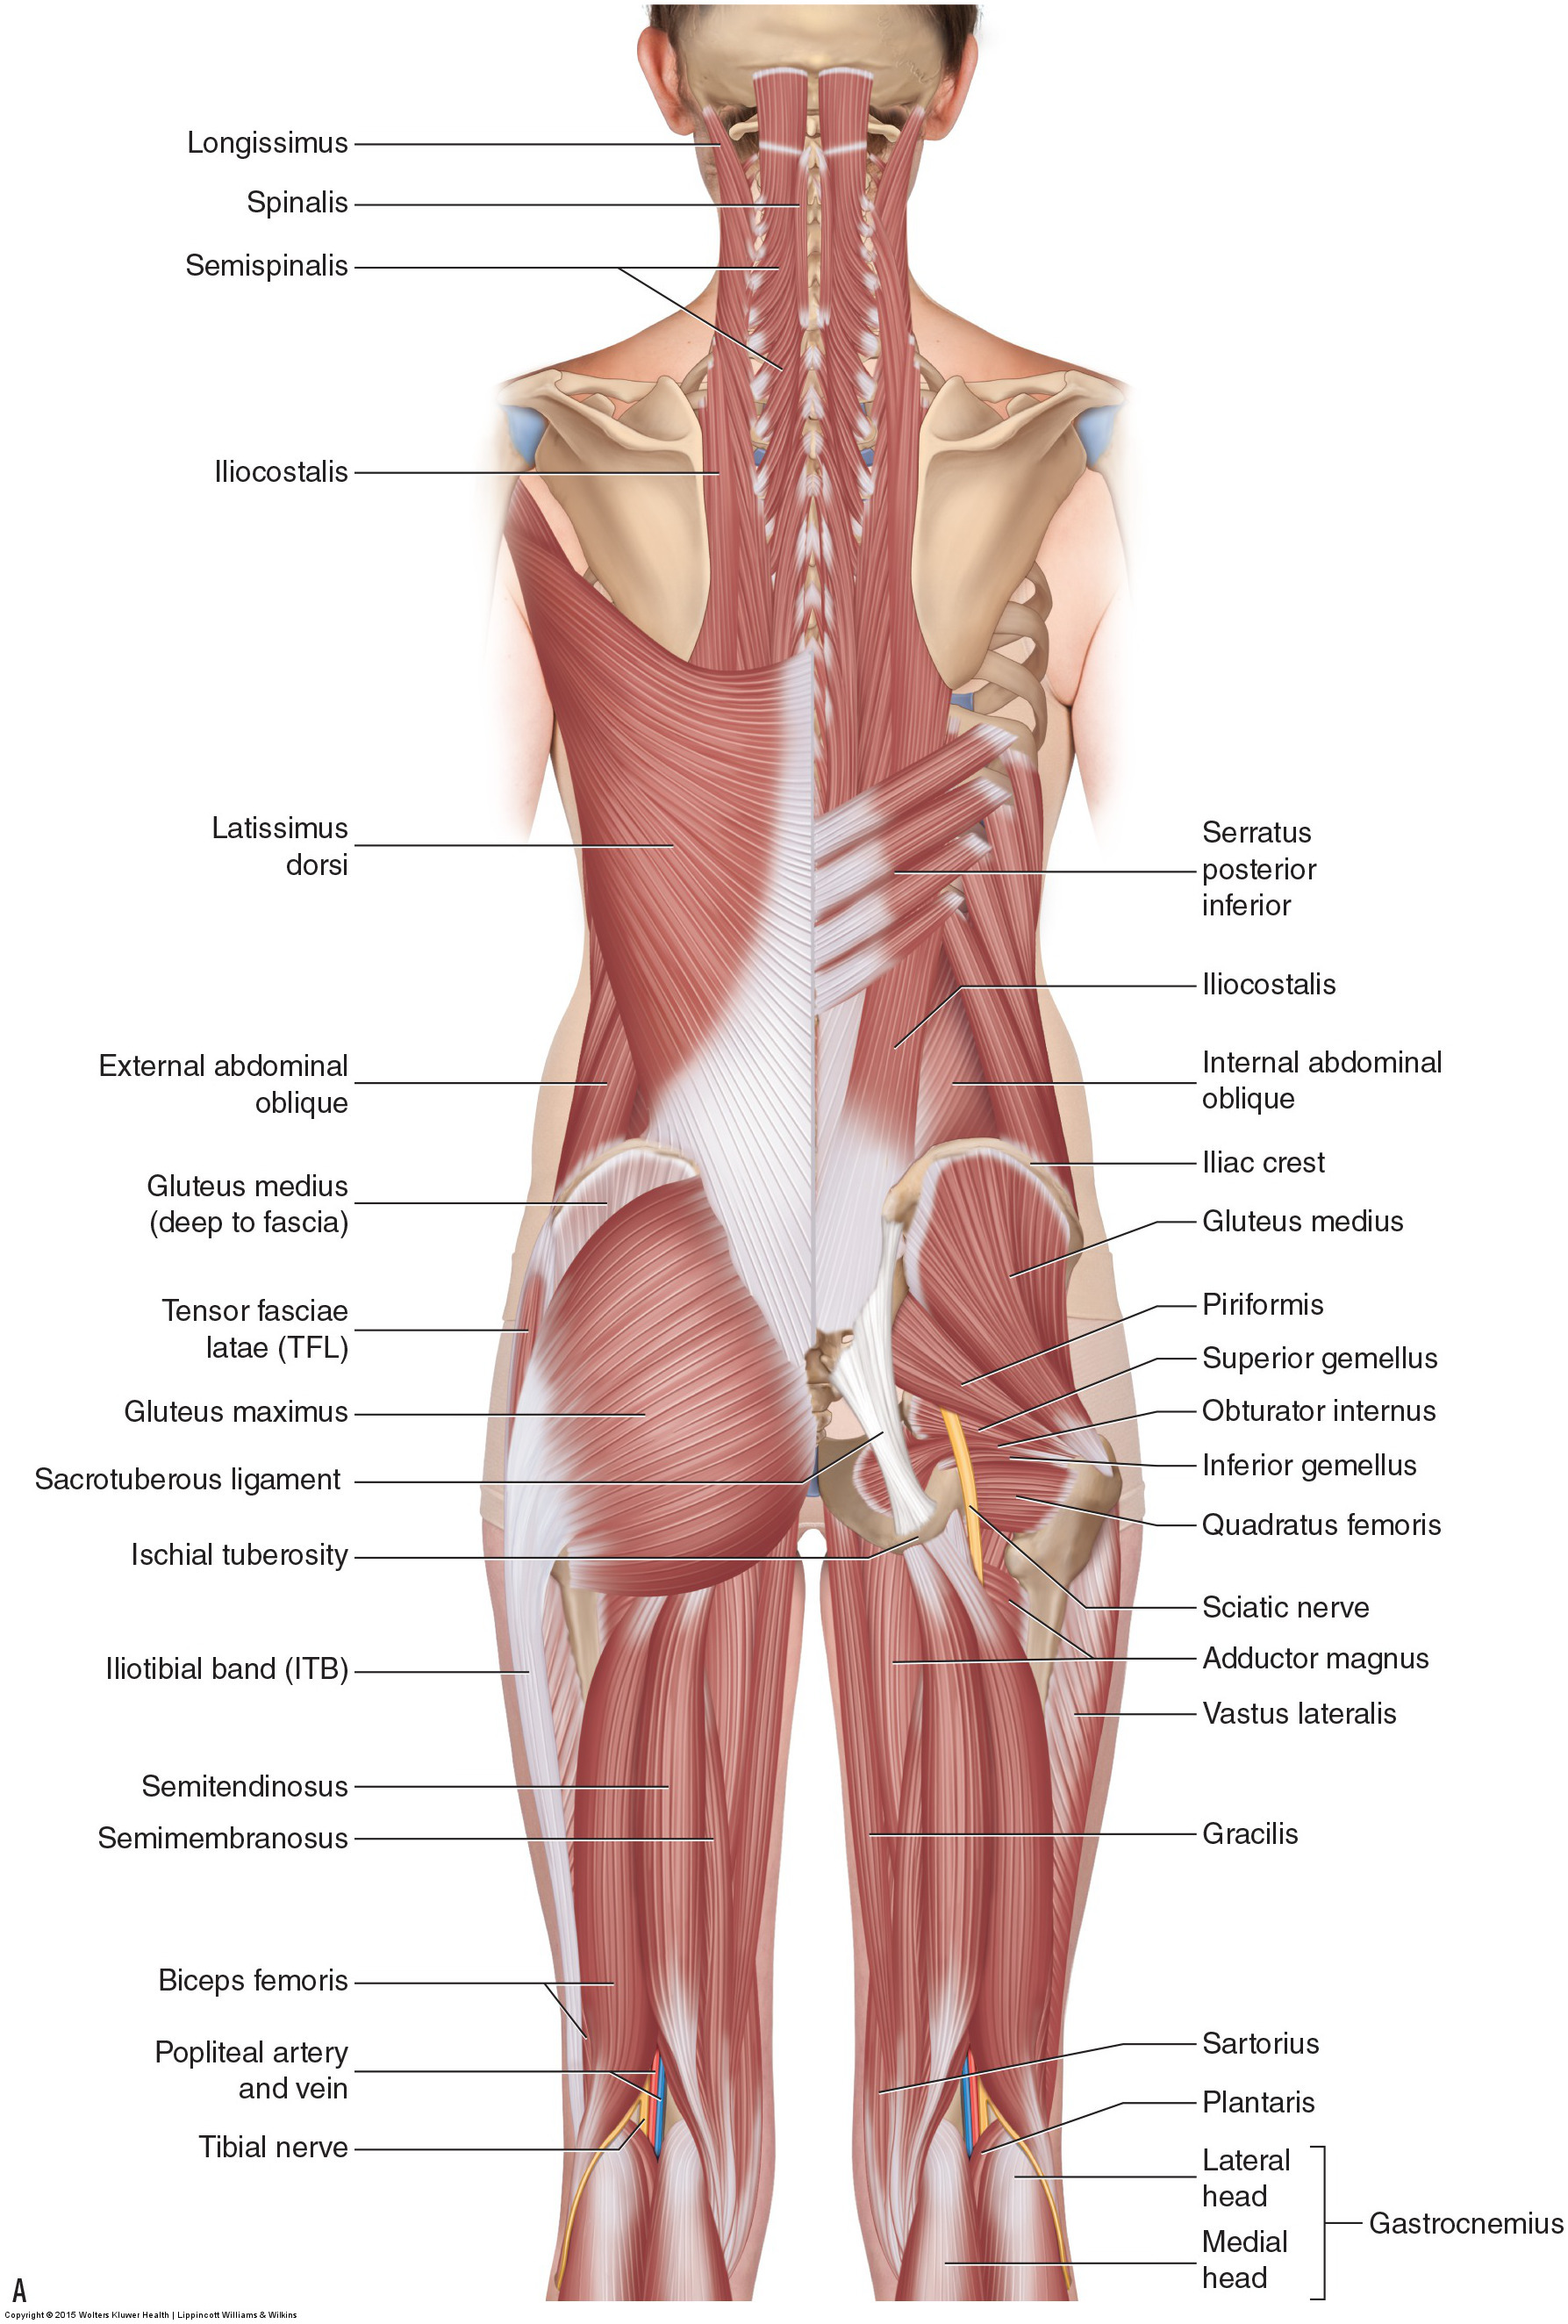 Lower Back And Leg Muscle Diagram : lower, muscle, diagram, Hamstring, Strain, Causes, Strain?